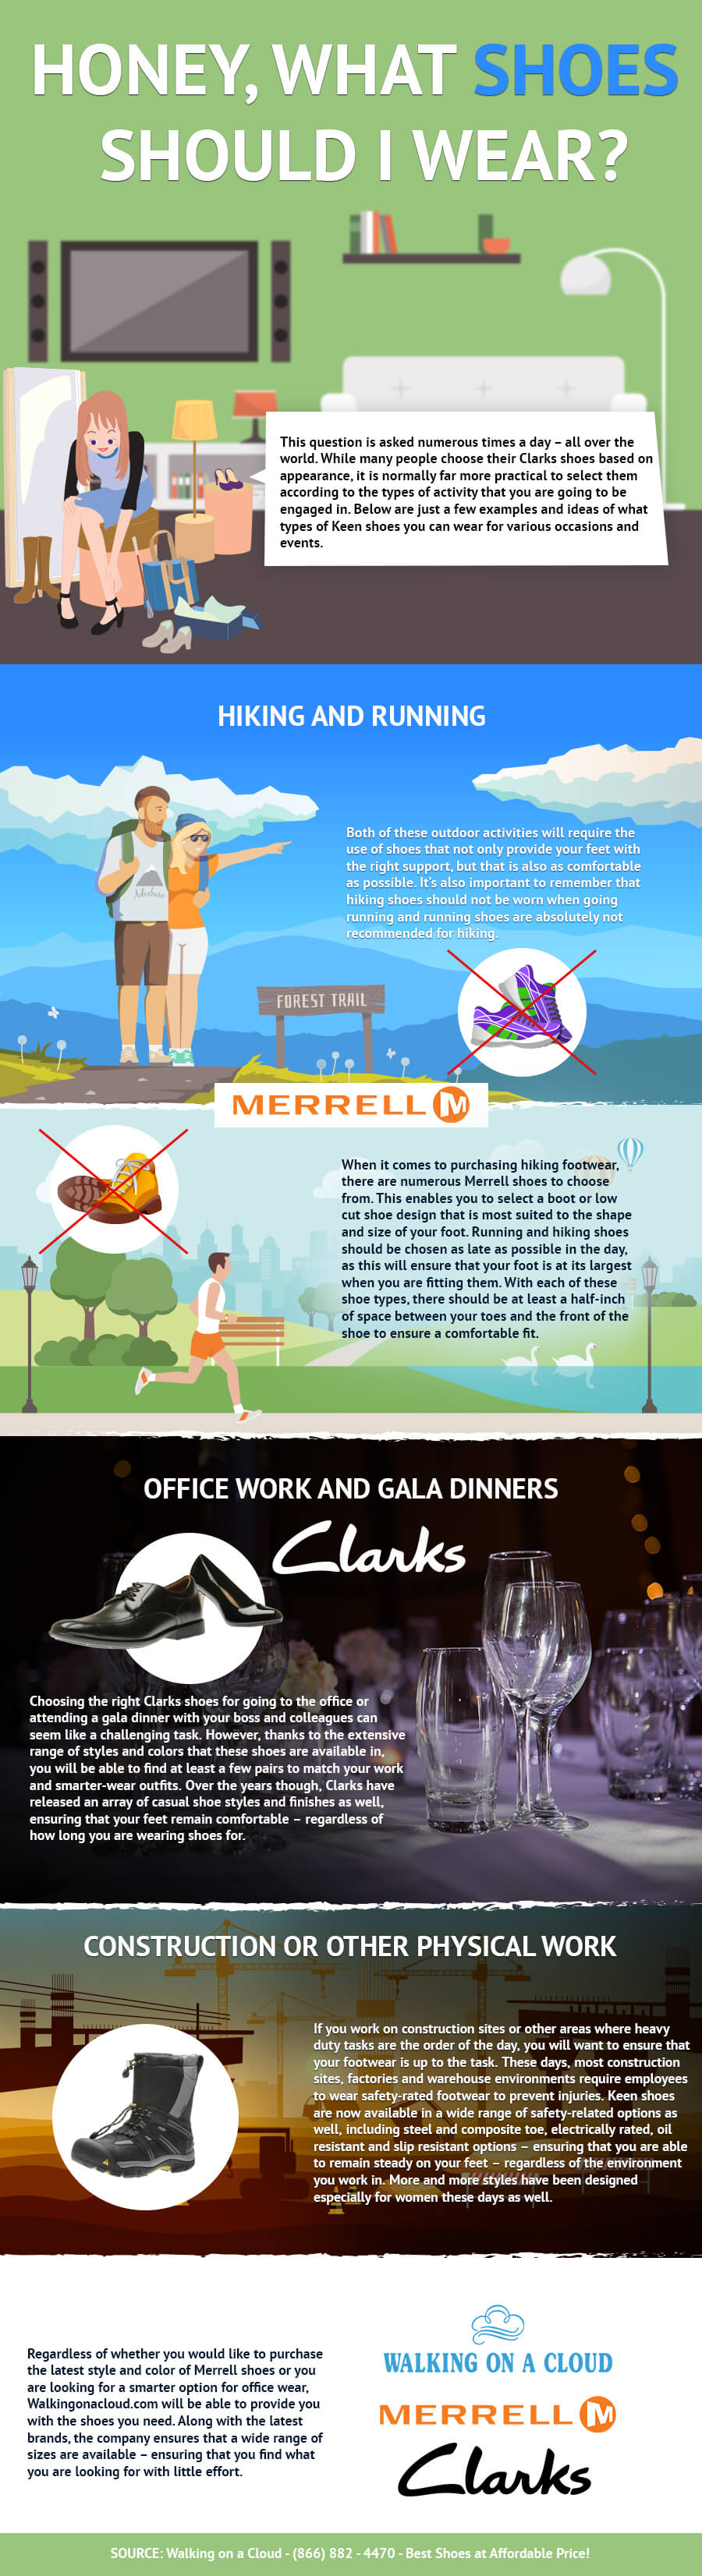 Honey-What-Shoes-Should-I-Wear-infographic-plaza